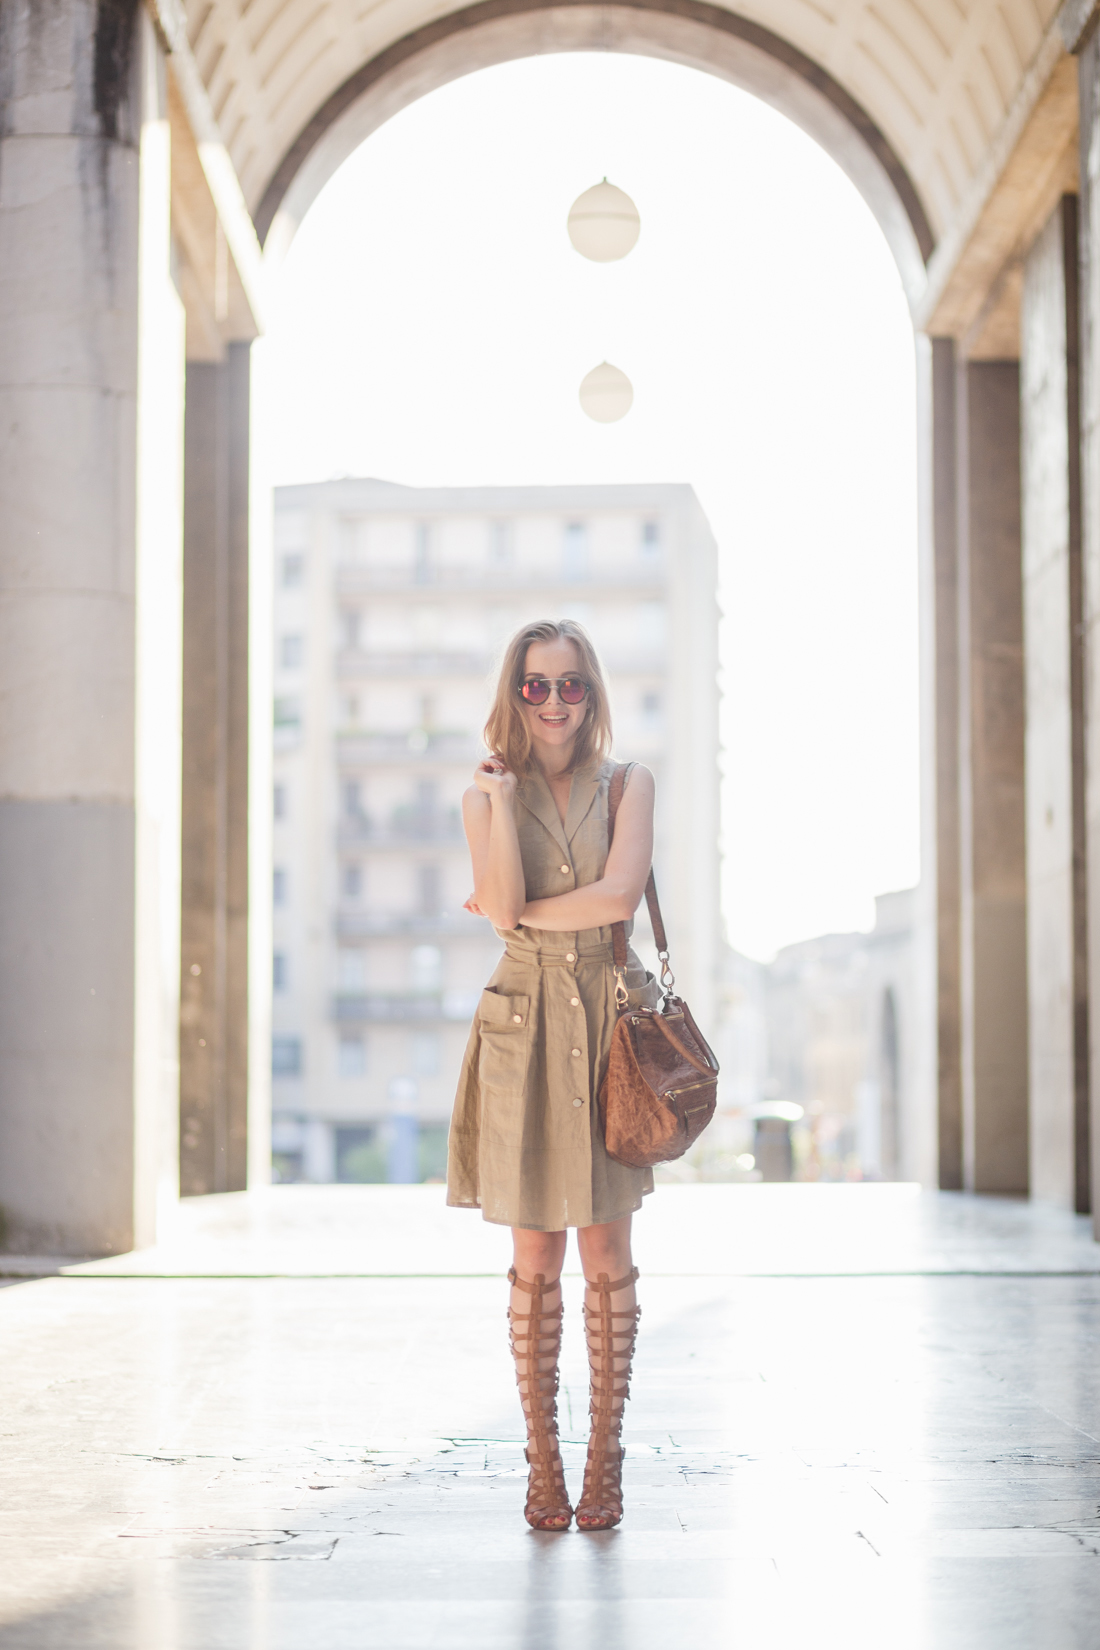 darya kamalova thecablook fashion lifestyle russian italian blogger wears stefanel dress schutz gladiators and giverchy pandora bag-1